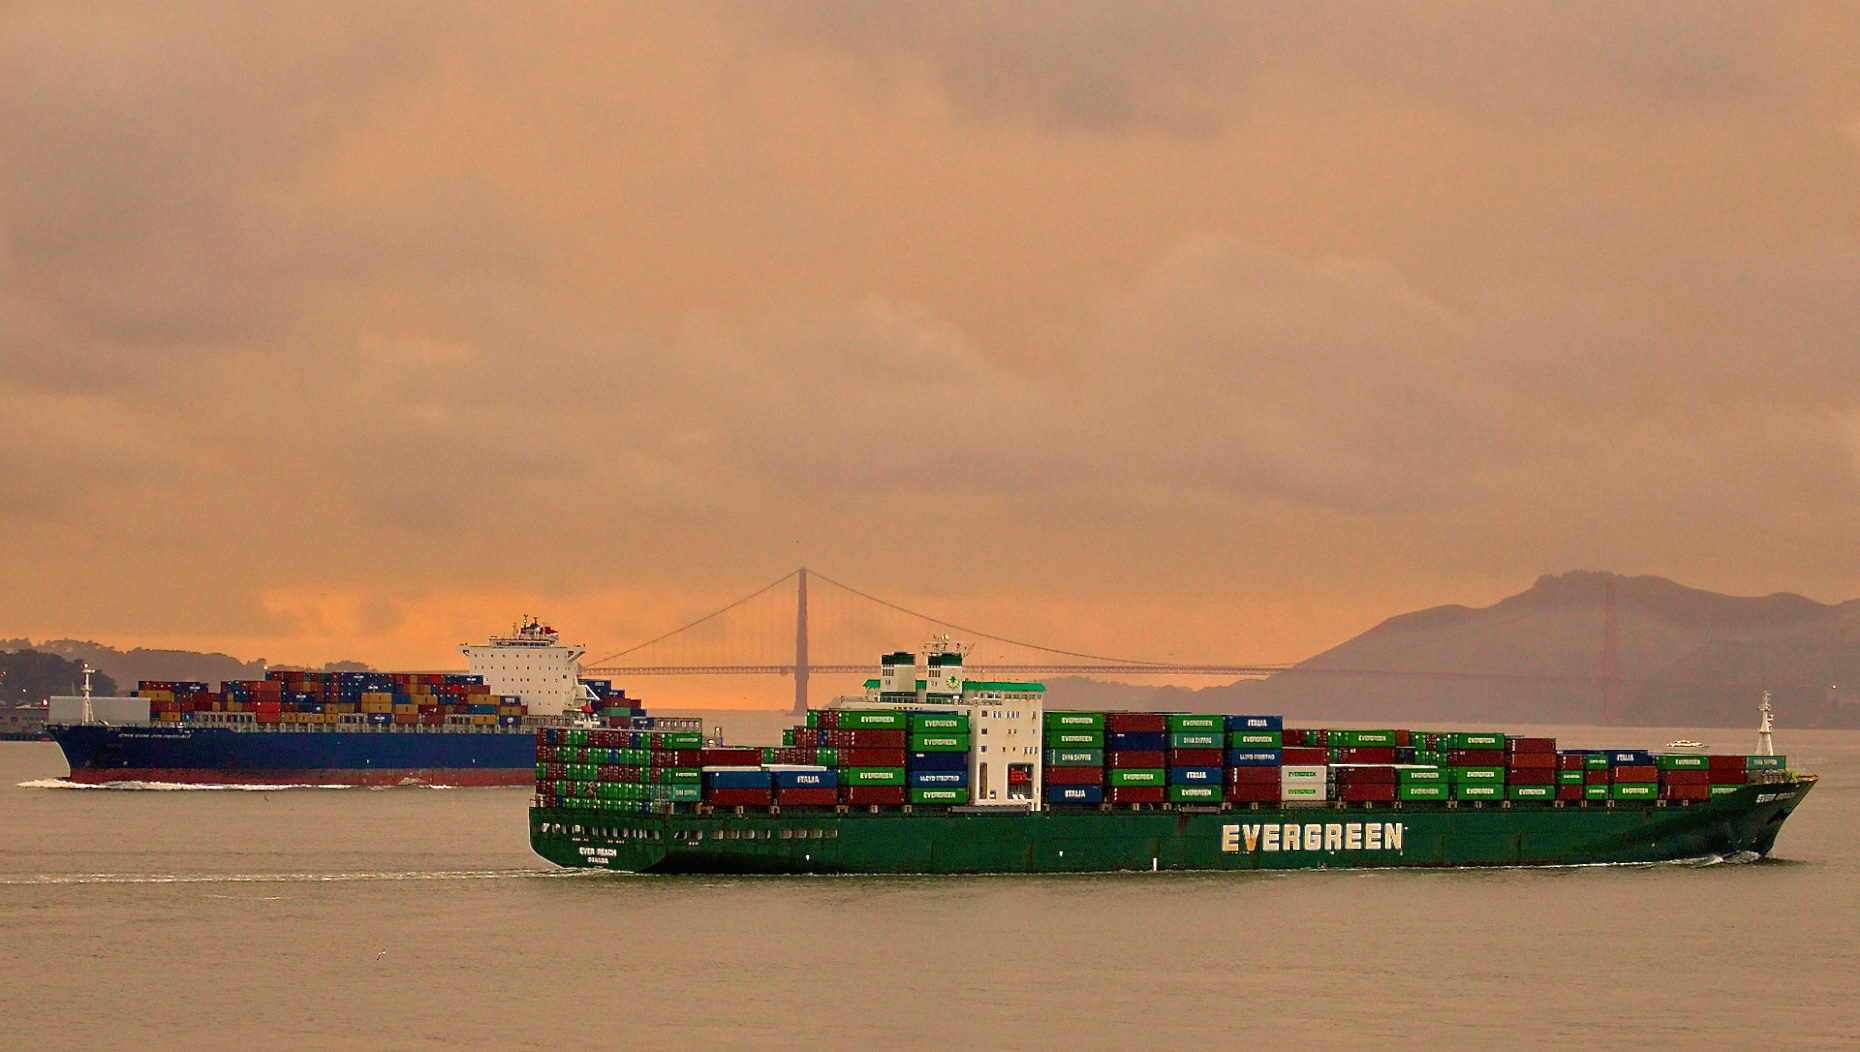 Port of Oakland, San Francisco Bay